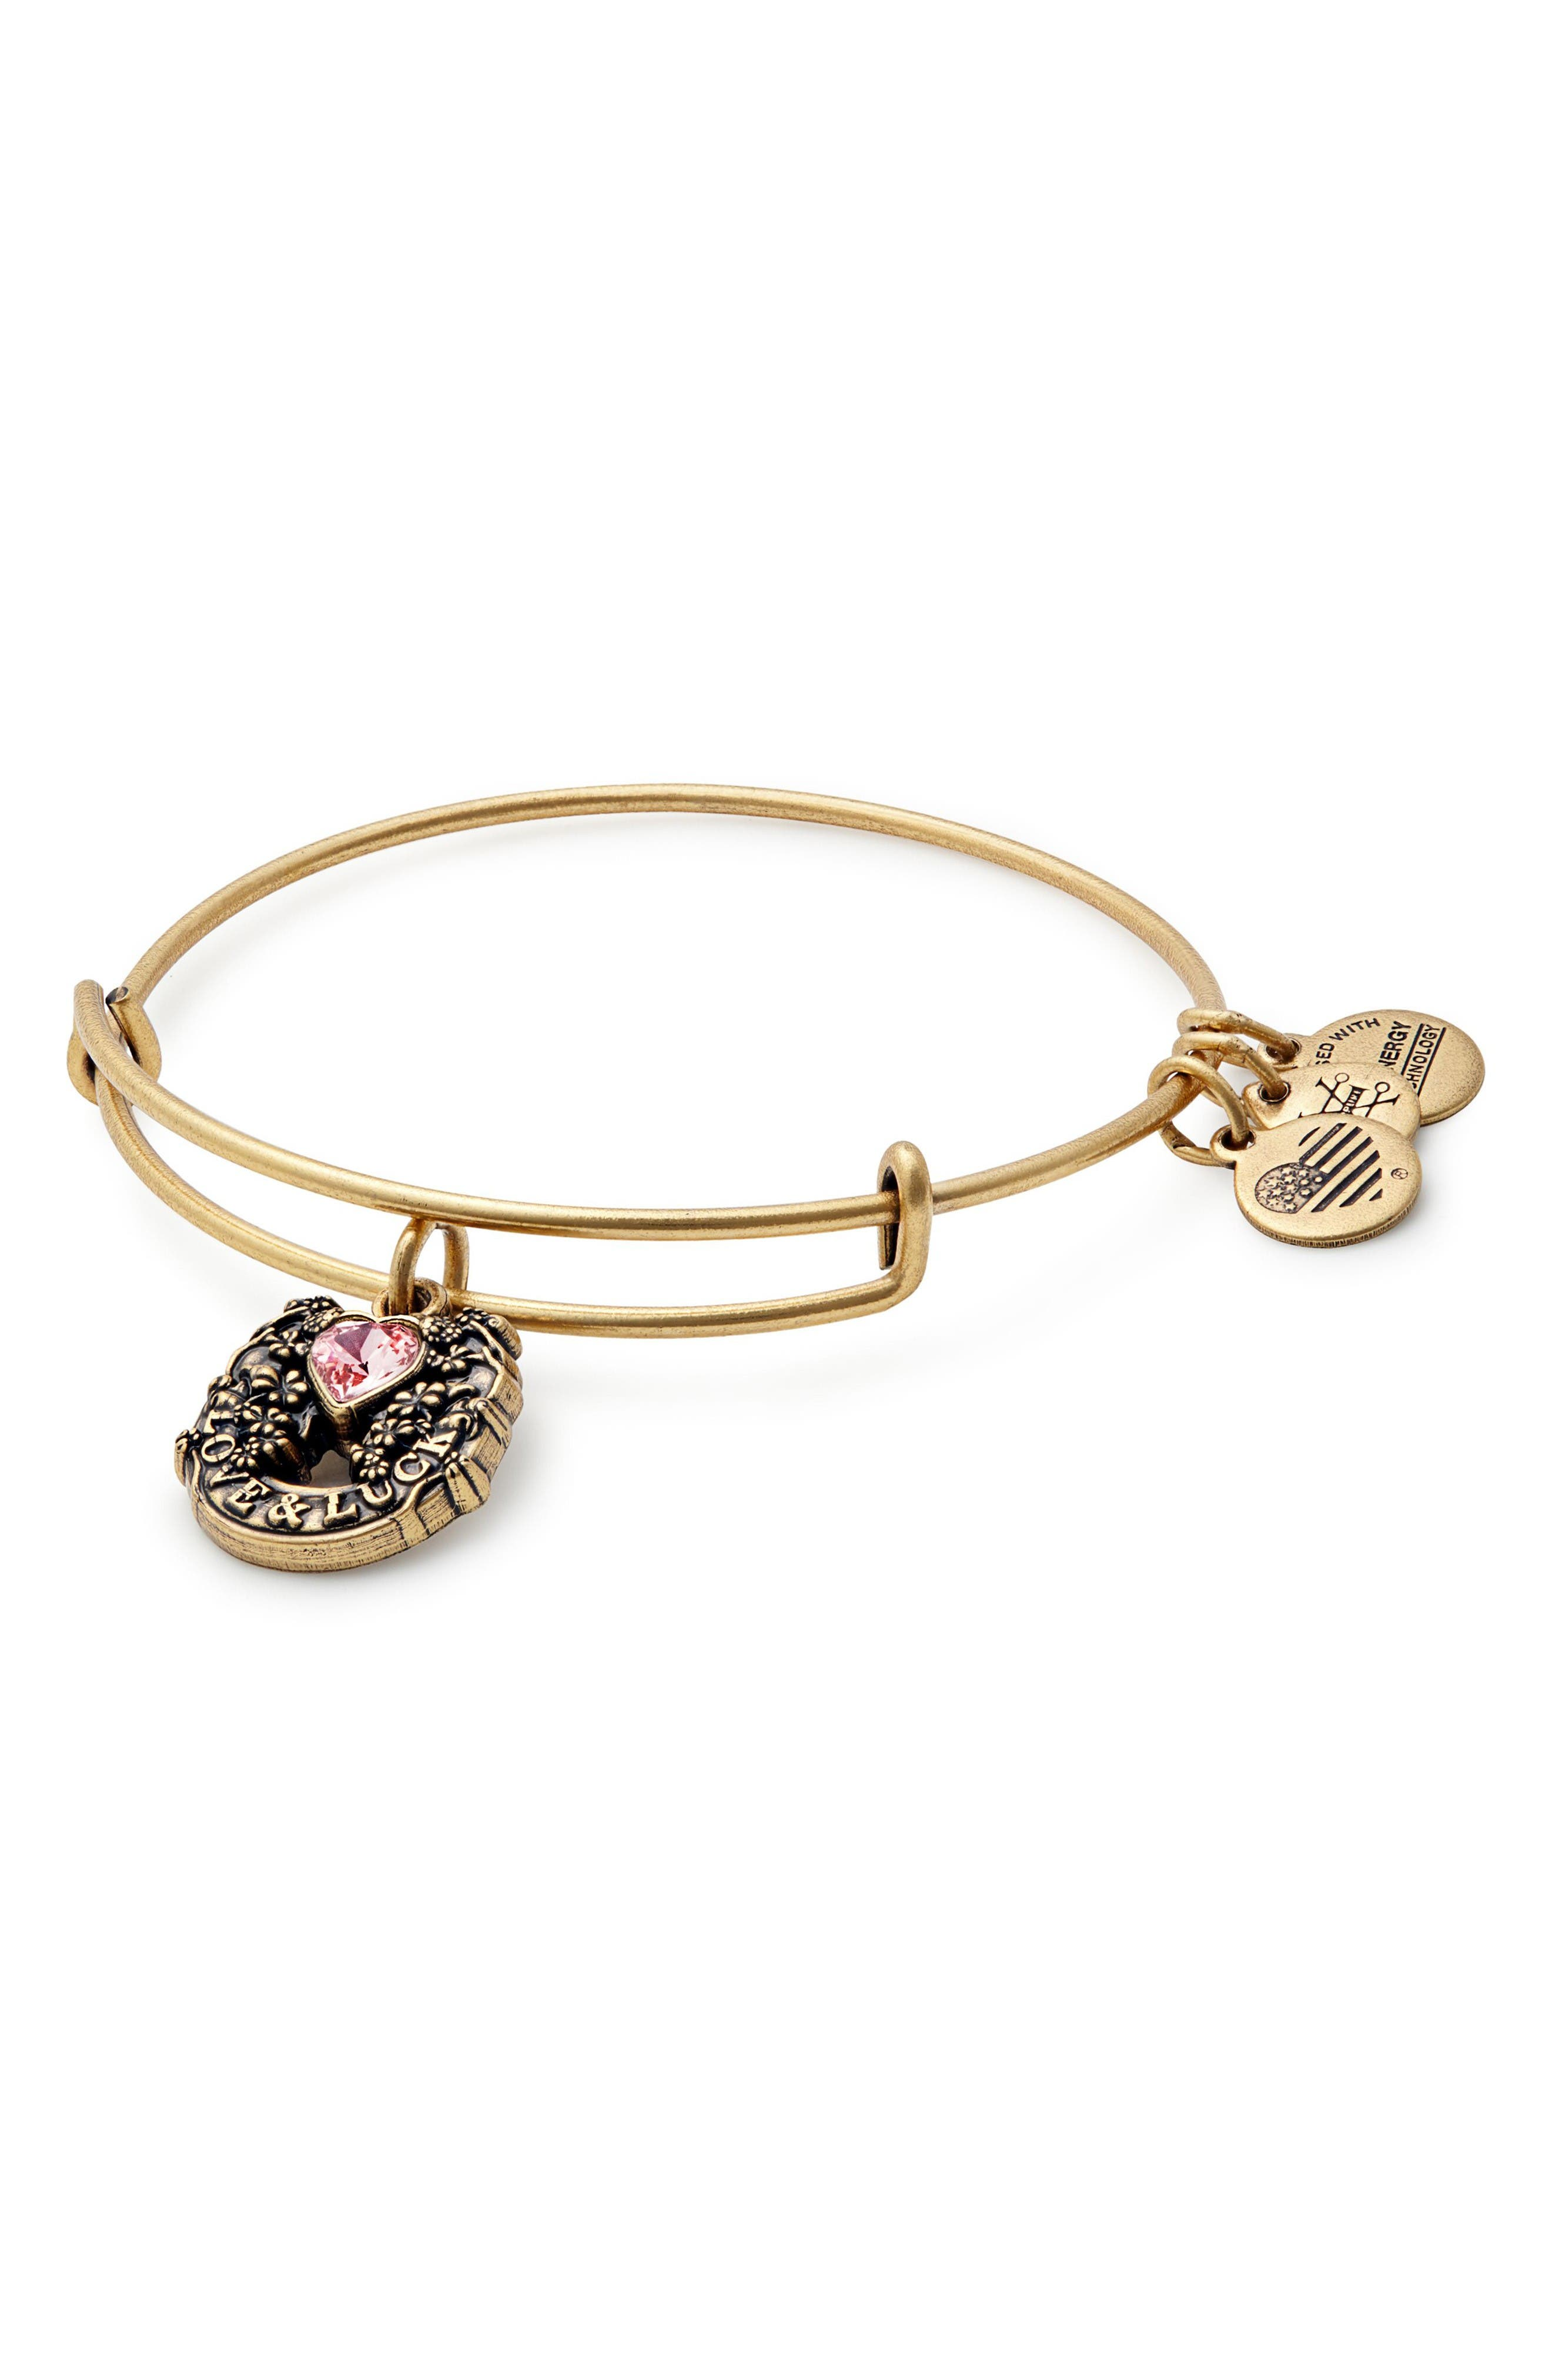 ALEX AND ANI Fortunes Favor Adjustable Wire Bangle